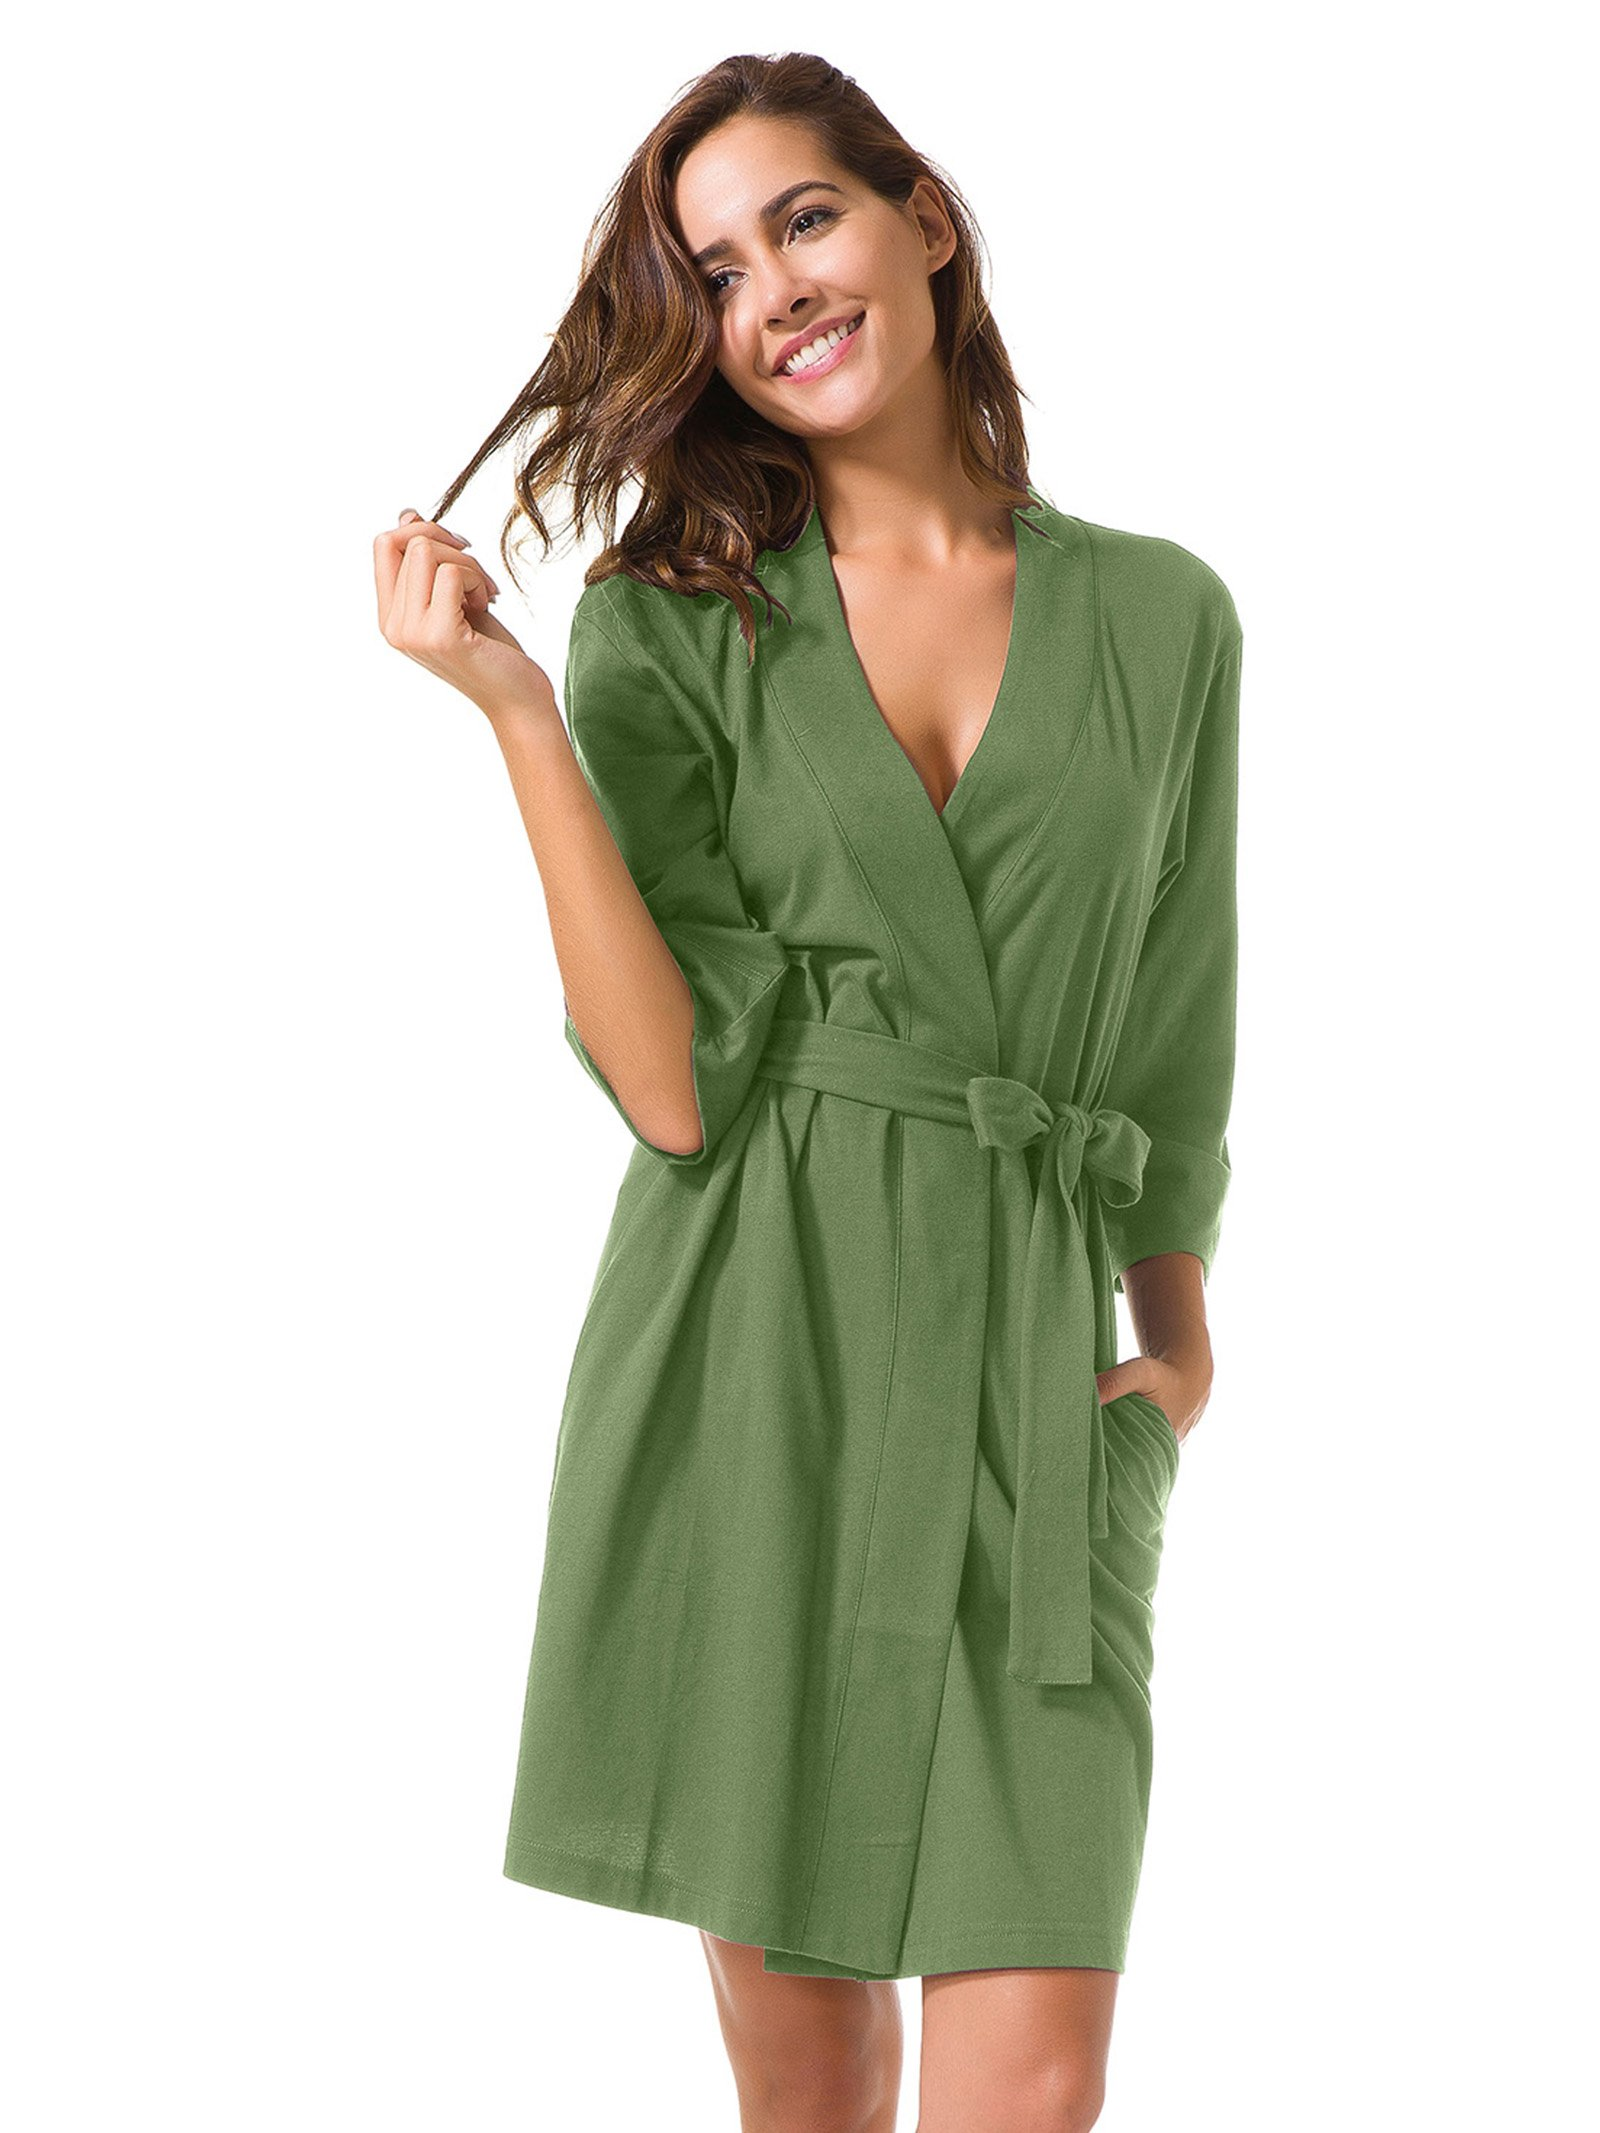 Galleon - SIORO Robe Plus Size Soft Cotton Robes Knit Terry Bathrobe  Lightweight Pajamas Lounger Short For Women Olive Green XL 99aadc283